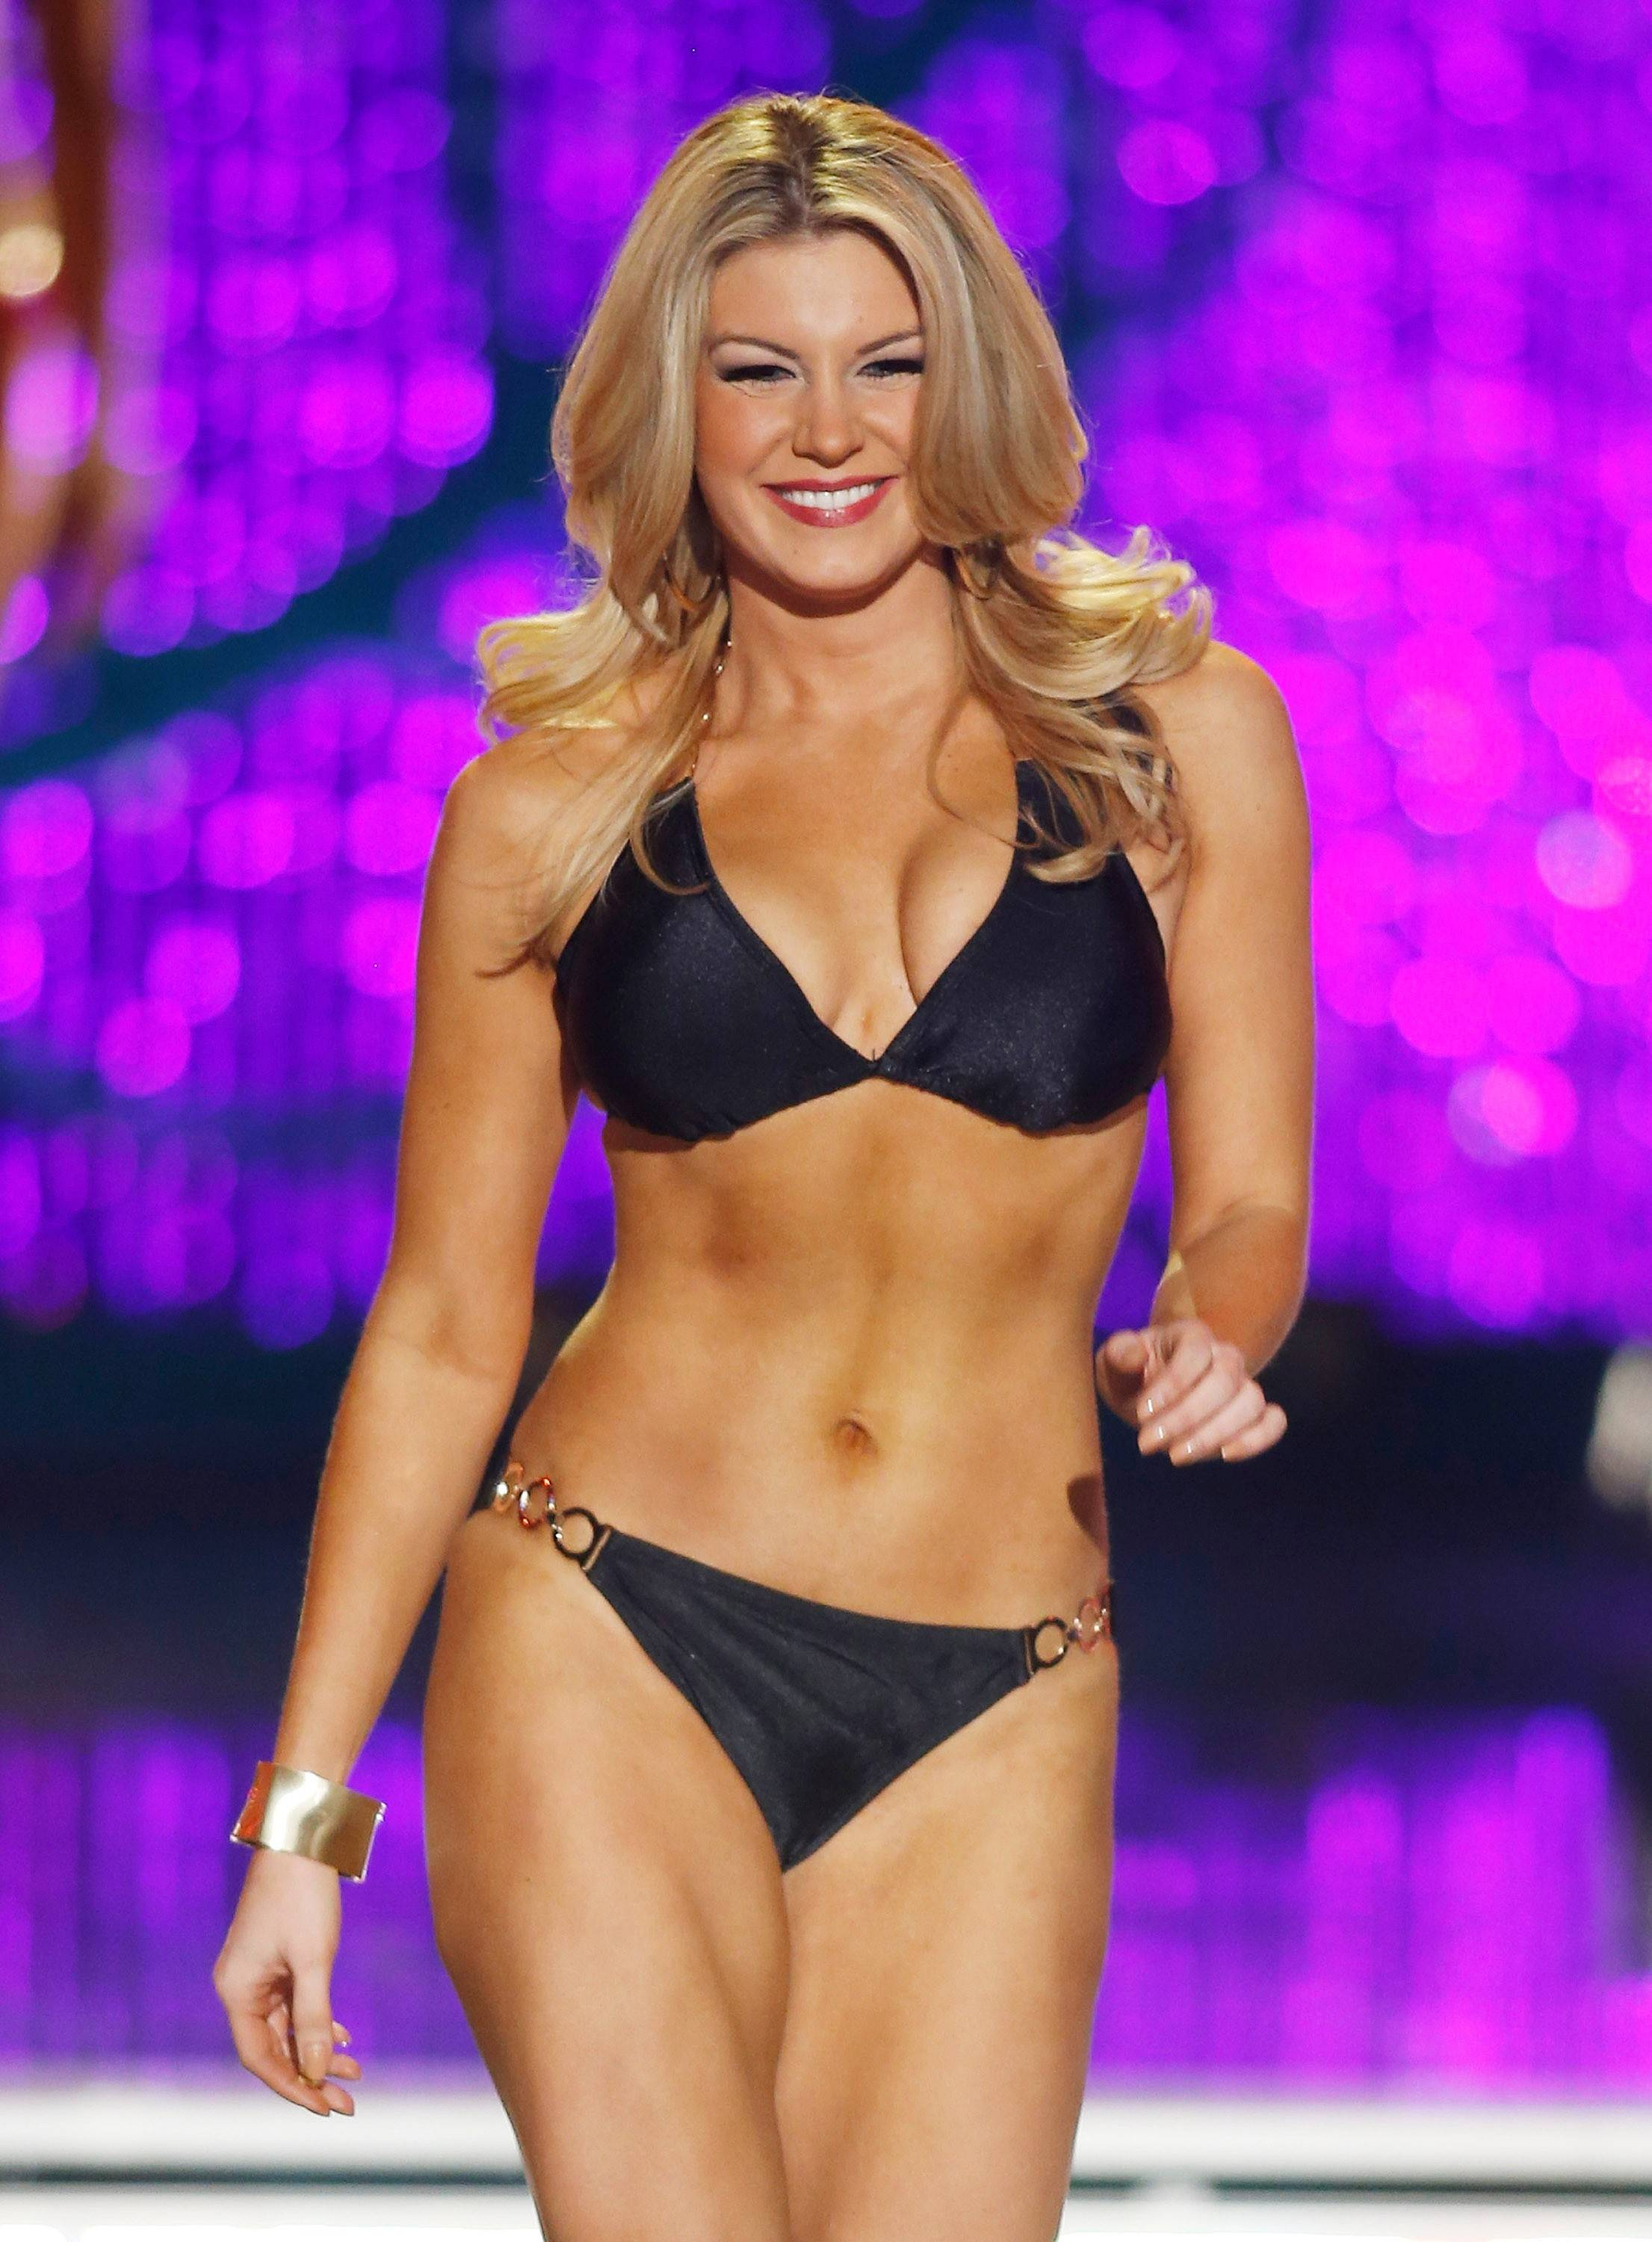 Miss New York Mallory Hytes Hagan competes in the swimsuit portion of the Miss America 2013 pageant on Saturday, Jan. 12, 2013, in Las Vegas